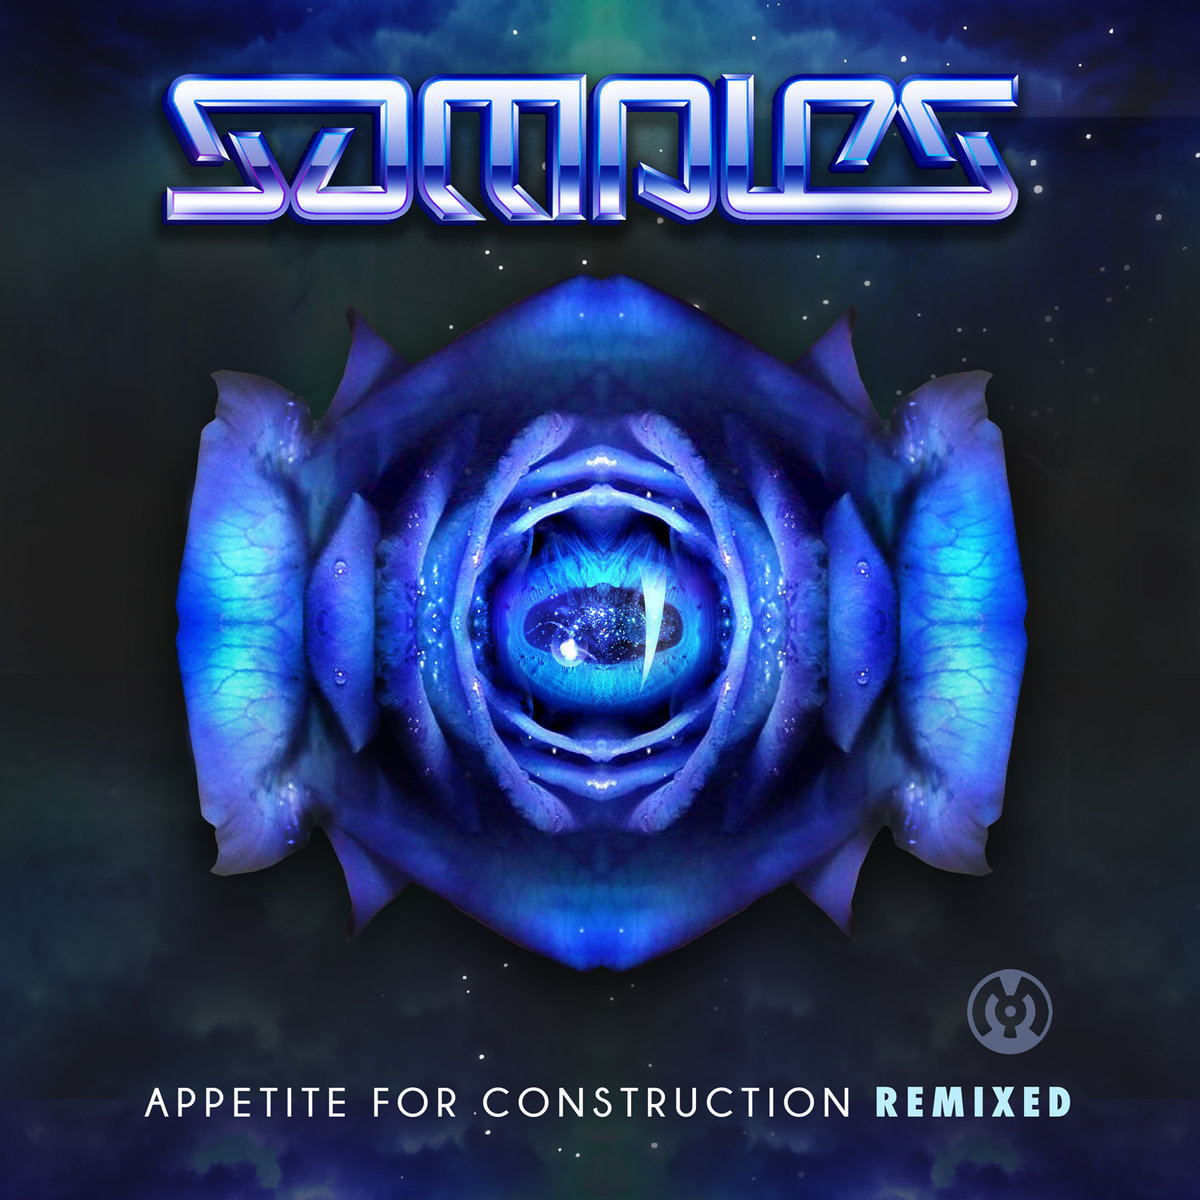 Samples - Corporate (Zebbler Encanti Experience Remix) @ 'Appetite For Construction Remixed' album (electronic, dubstep)